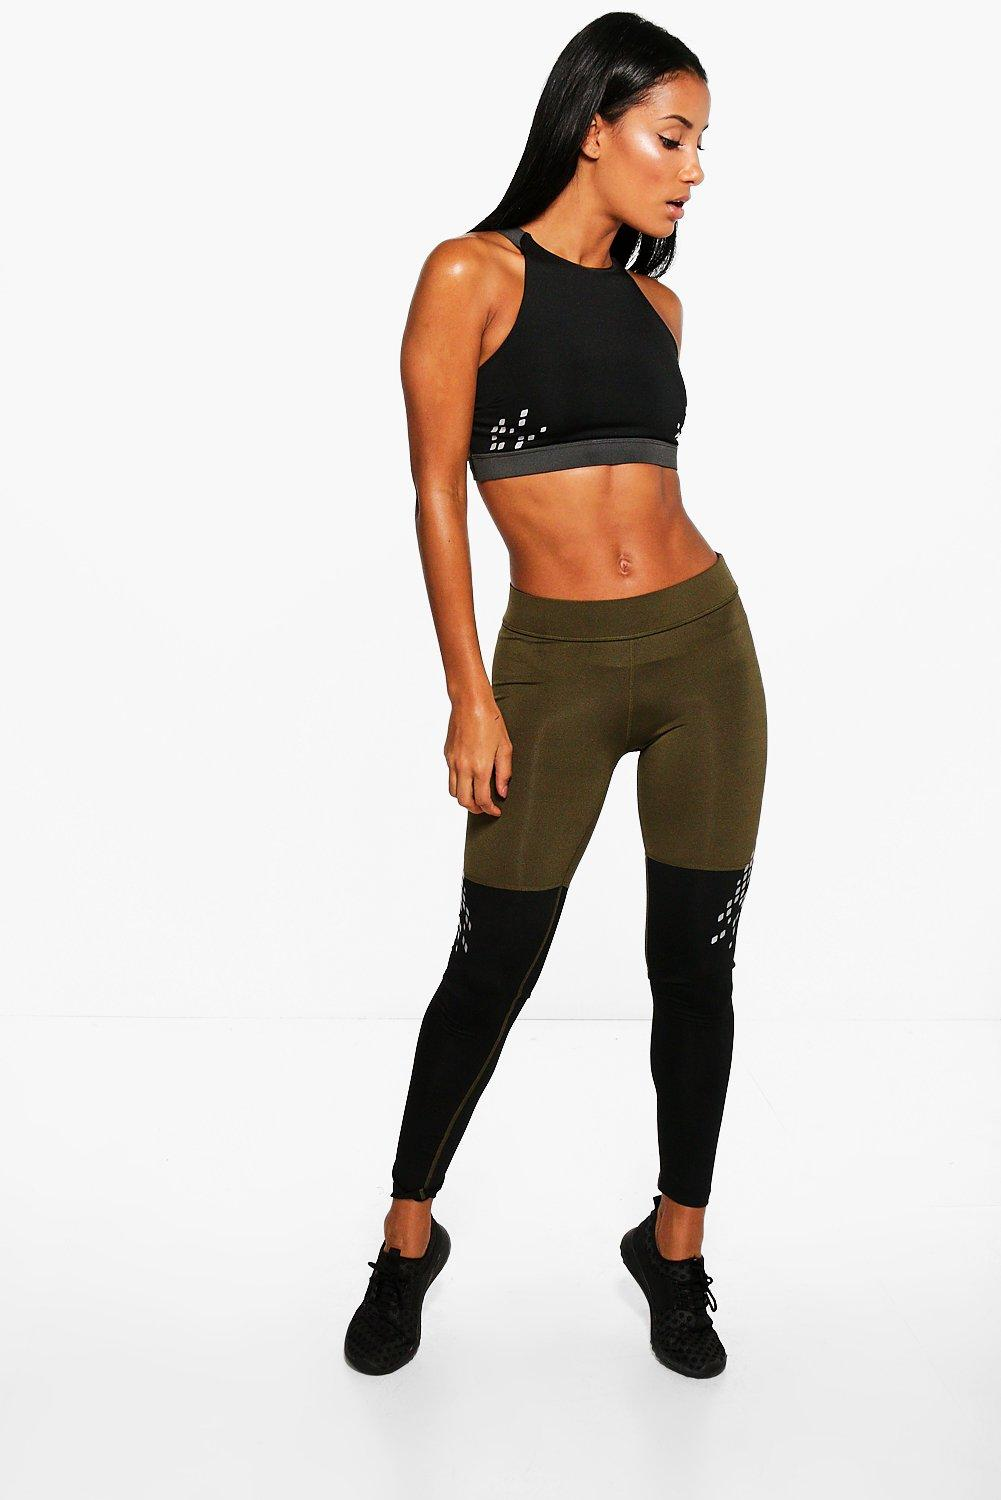 Molly Fit Contrast Panel Running Leggings khaki